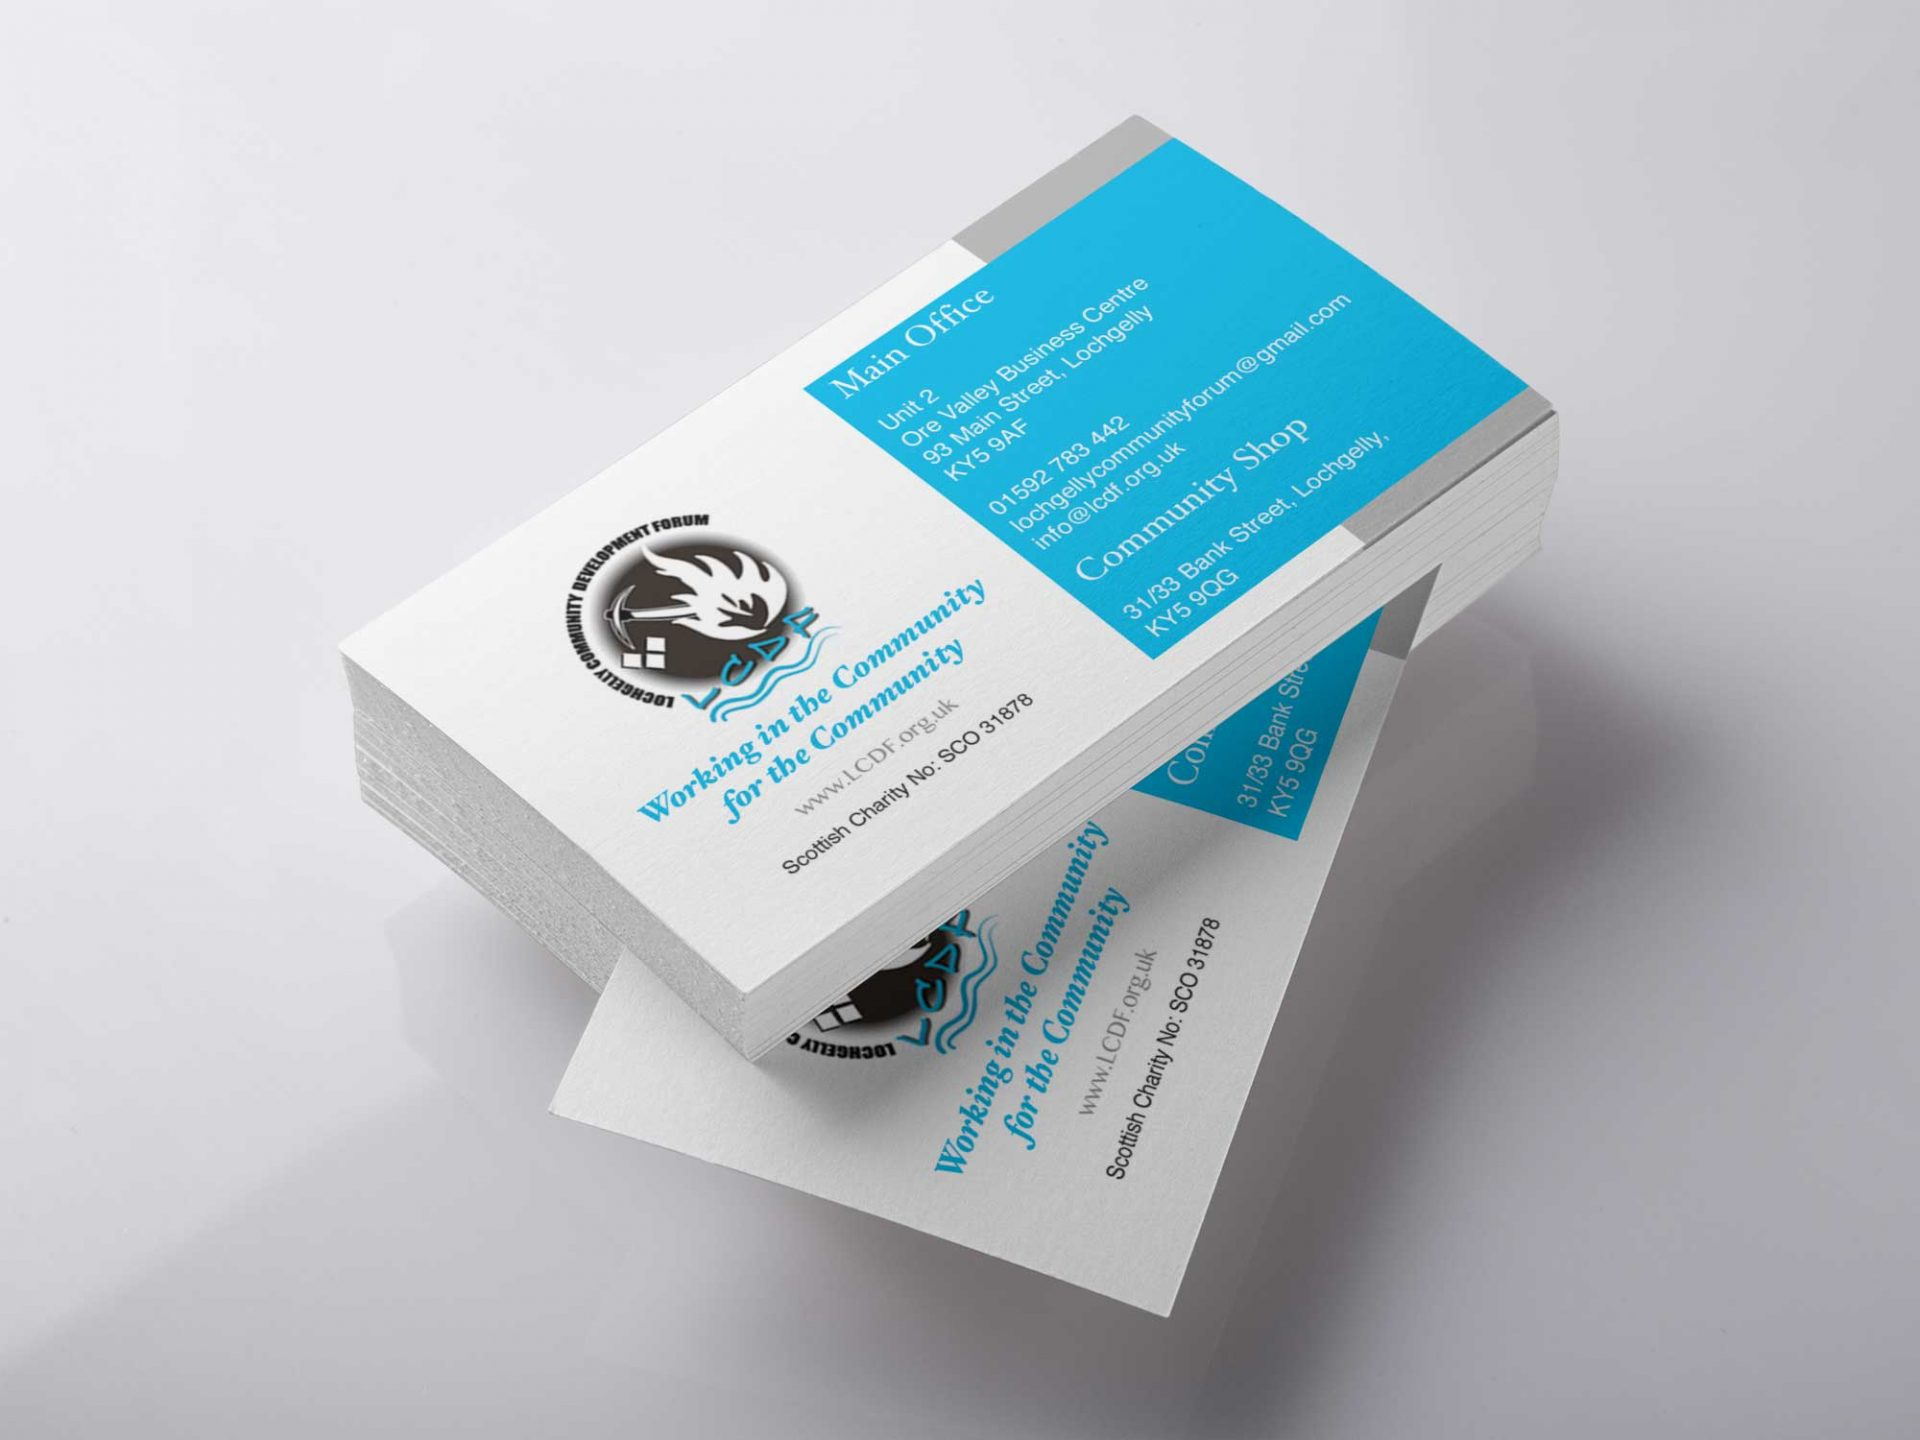 Design Fife - LCDF Business Card